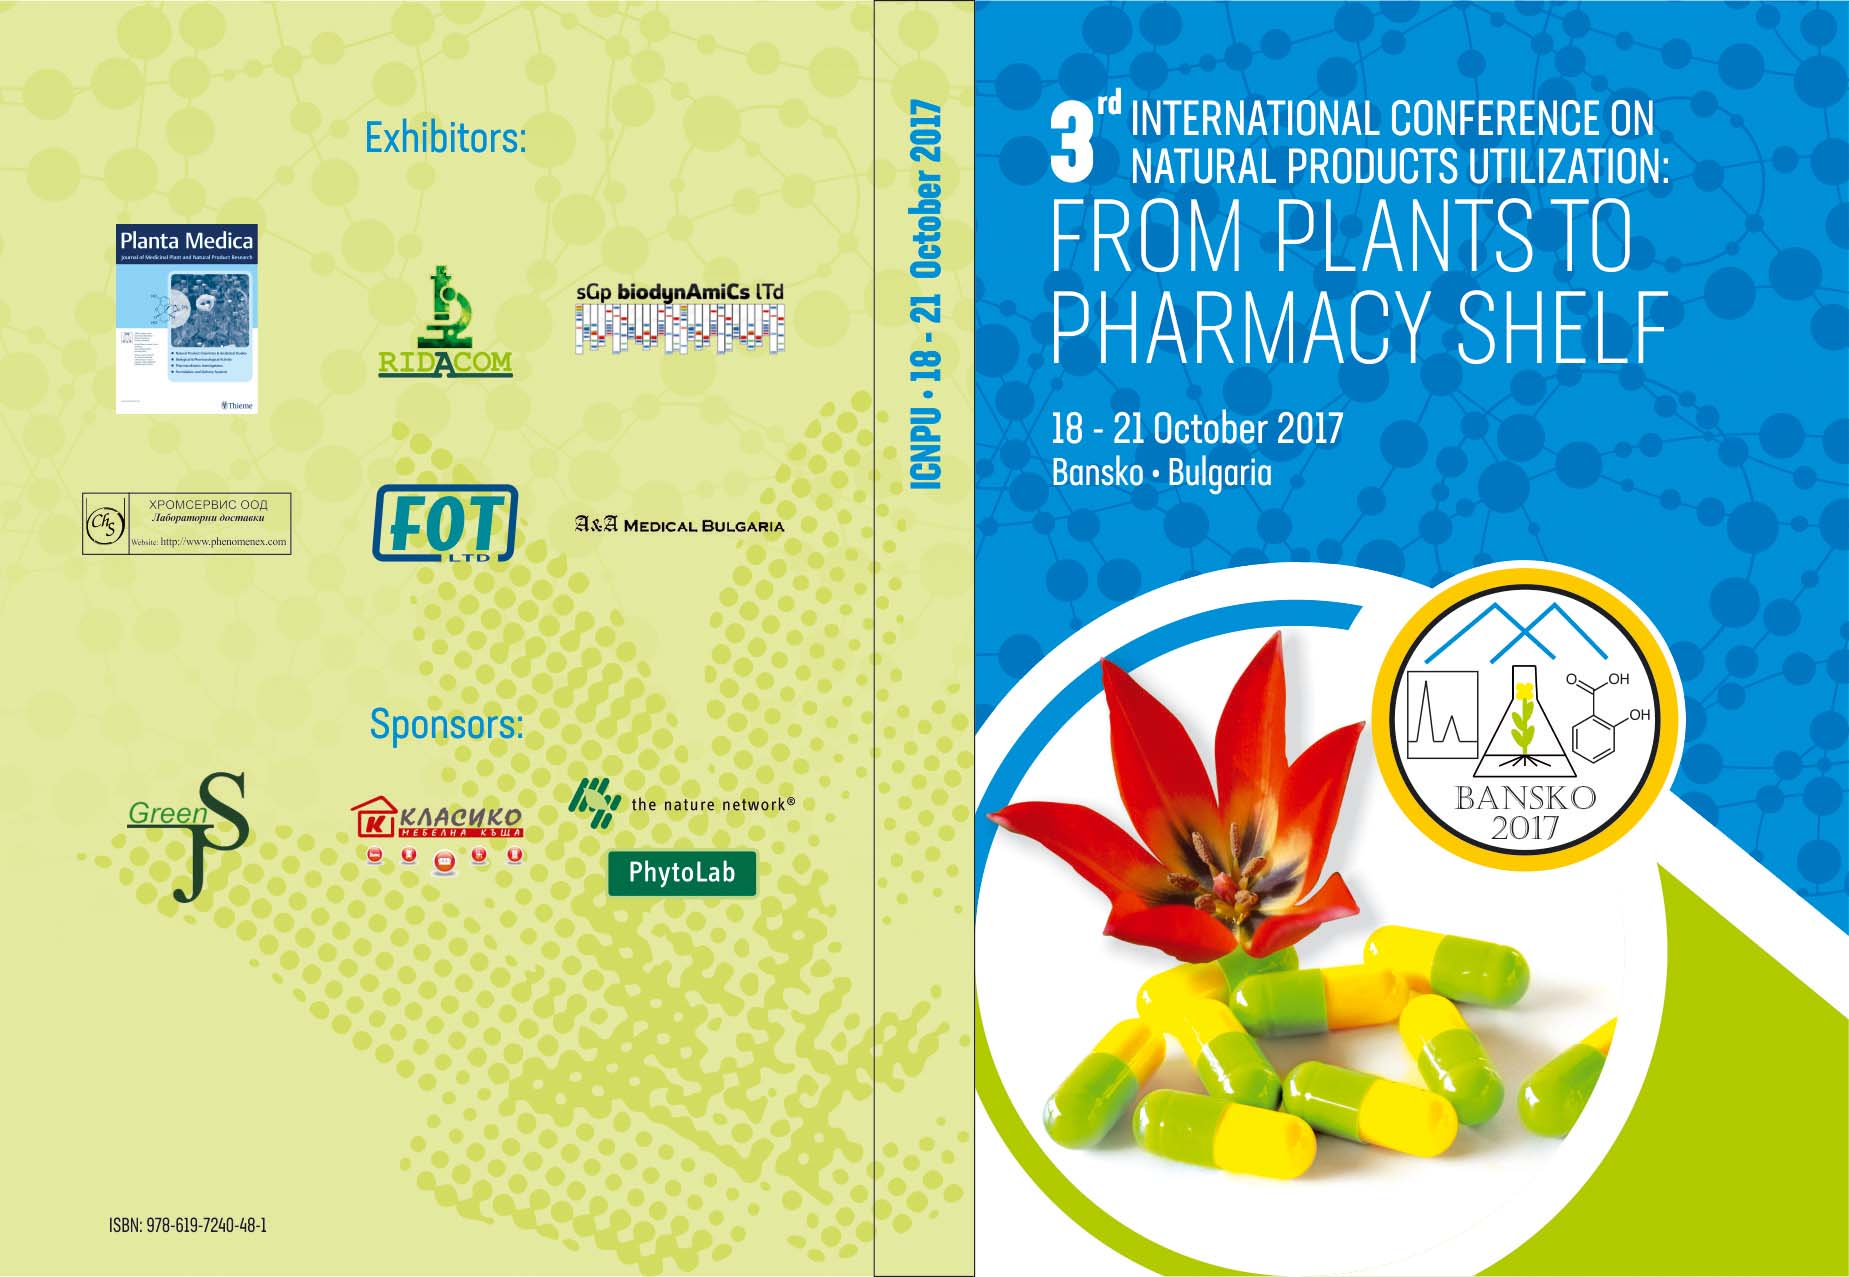 ICNPU 2019, 4th International Conference on Natural Products Utilization